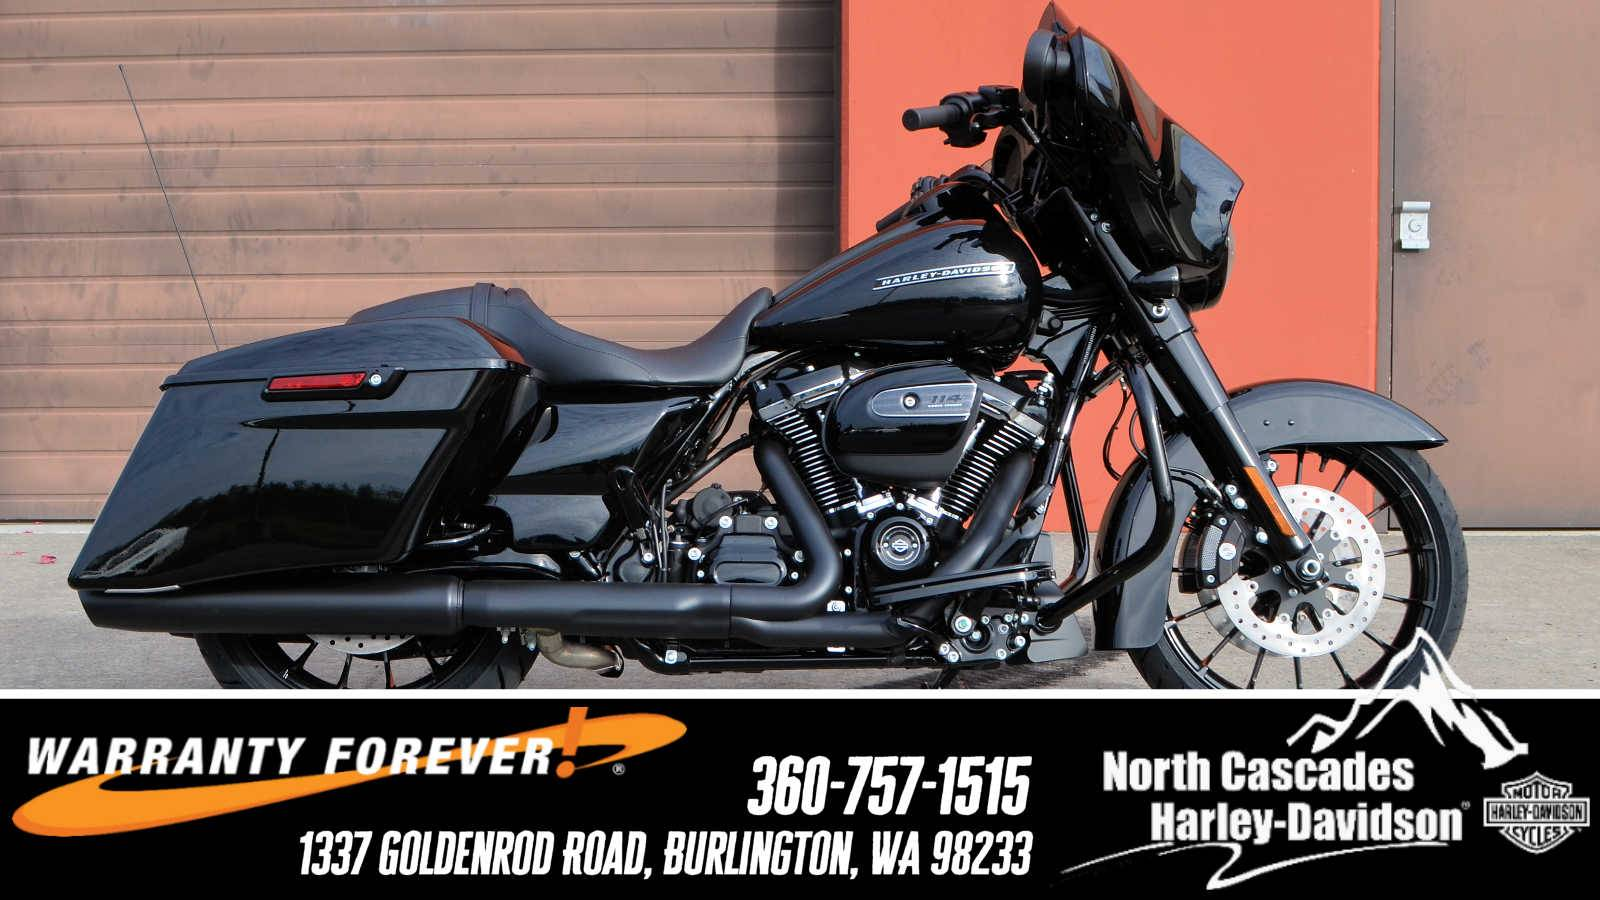 2019 Harley-Davidson Street Glide® Special in Burlington, Washington - Photo 1